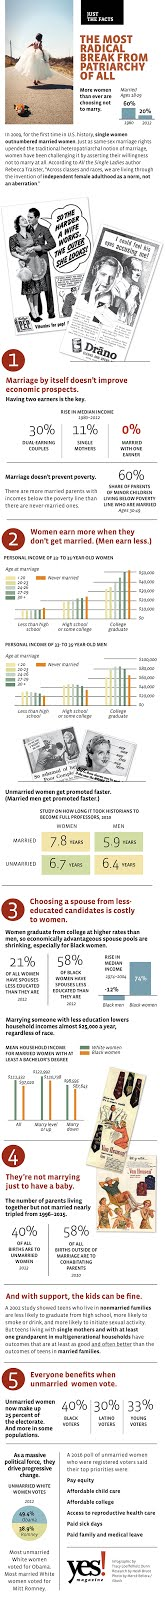 The Economics of Women and Marriage